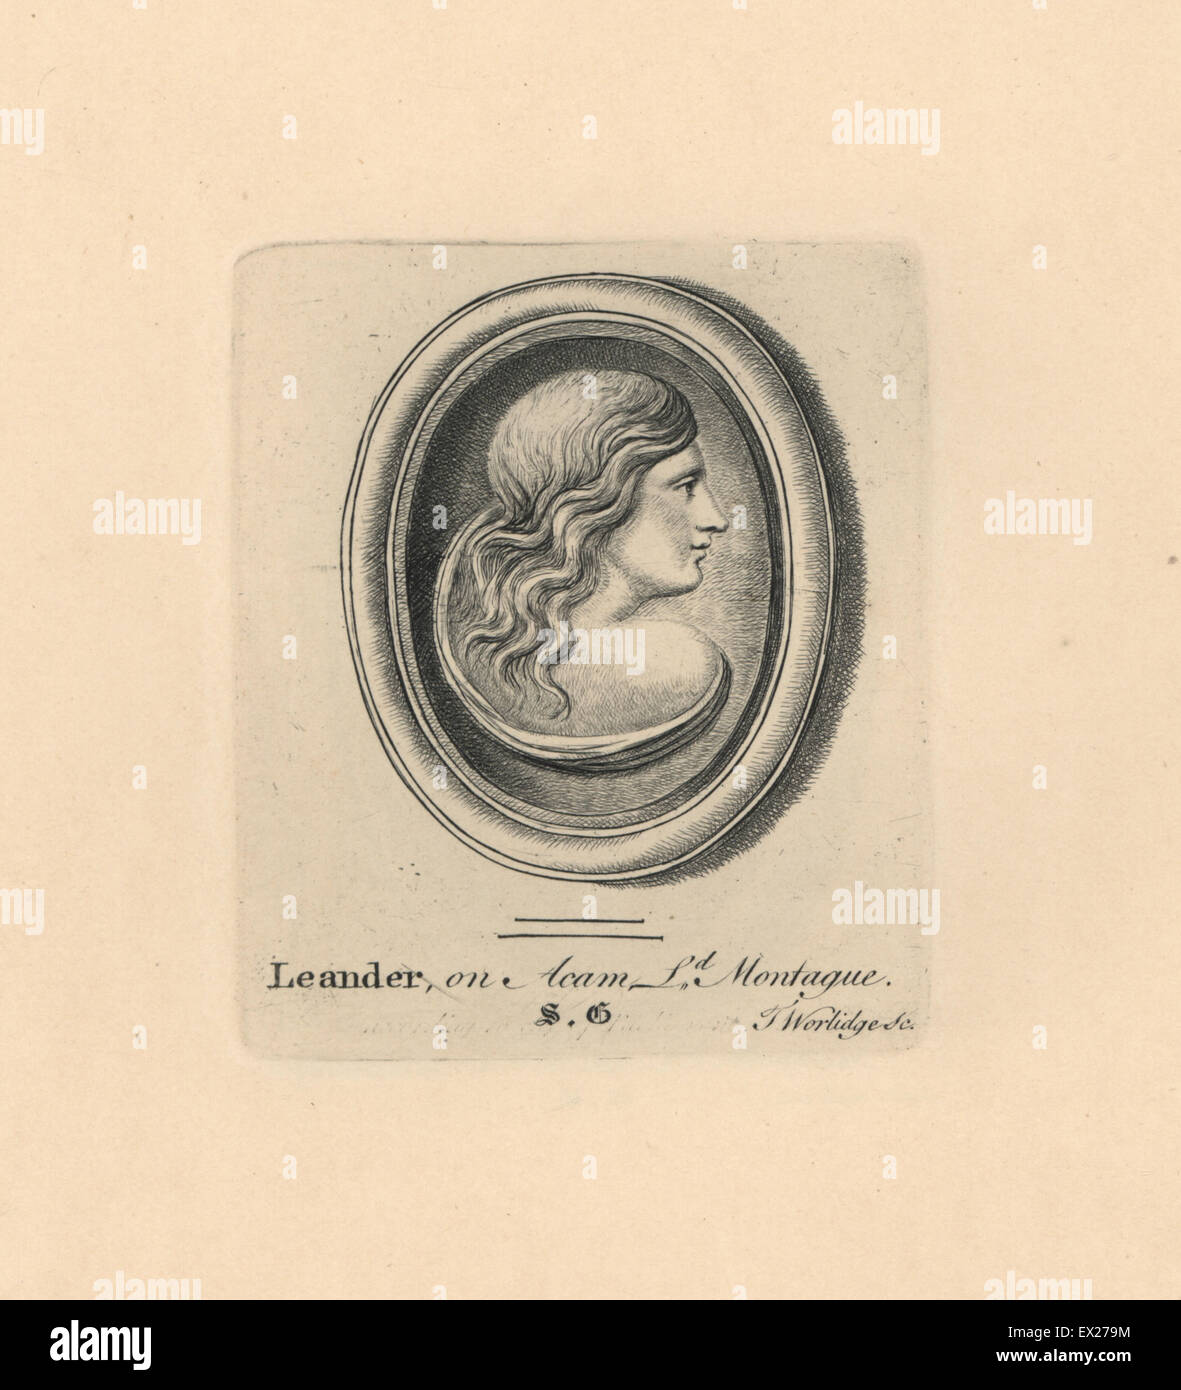 Portrait of Leander, youth and lover of Hero in Greek myth, on acam from Lord Montague's collection. Copperplate - Stock Image